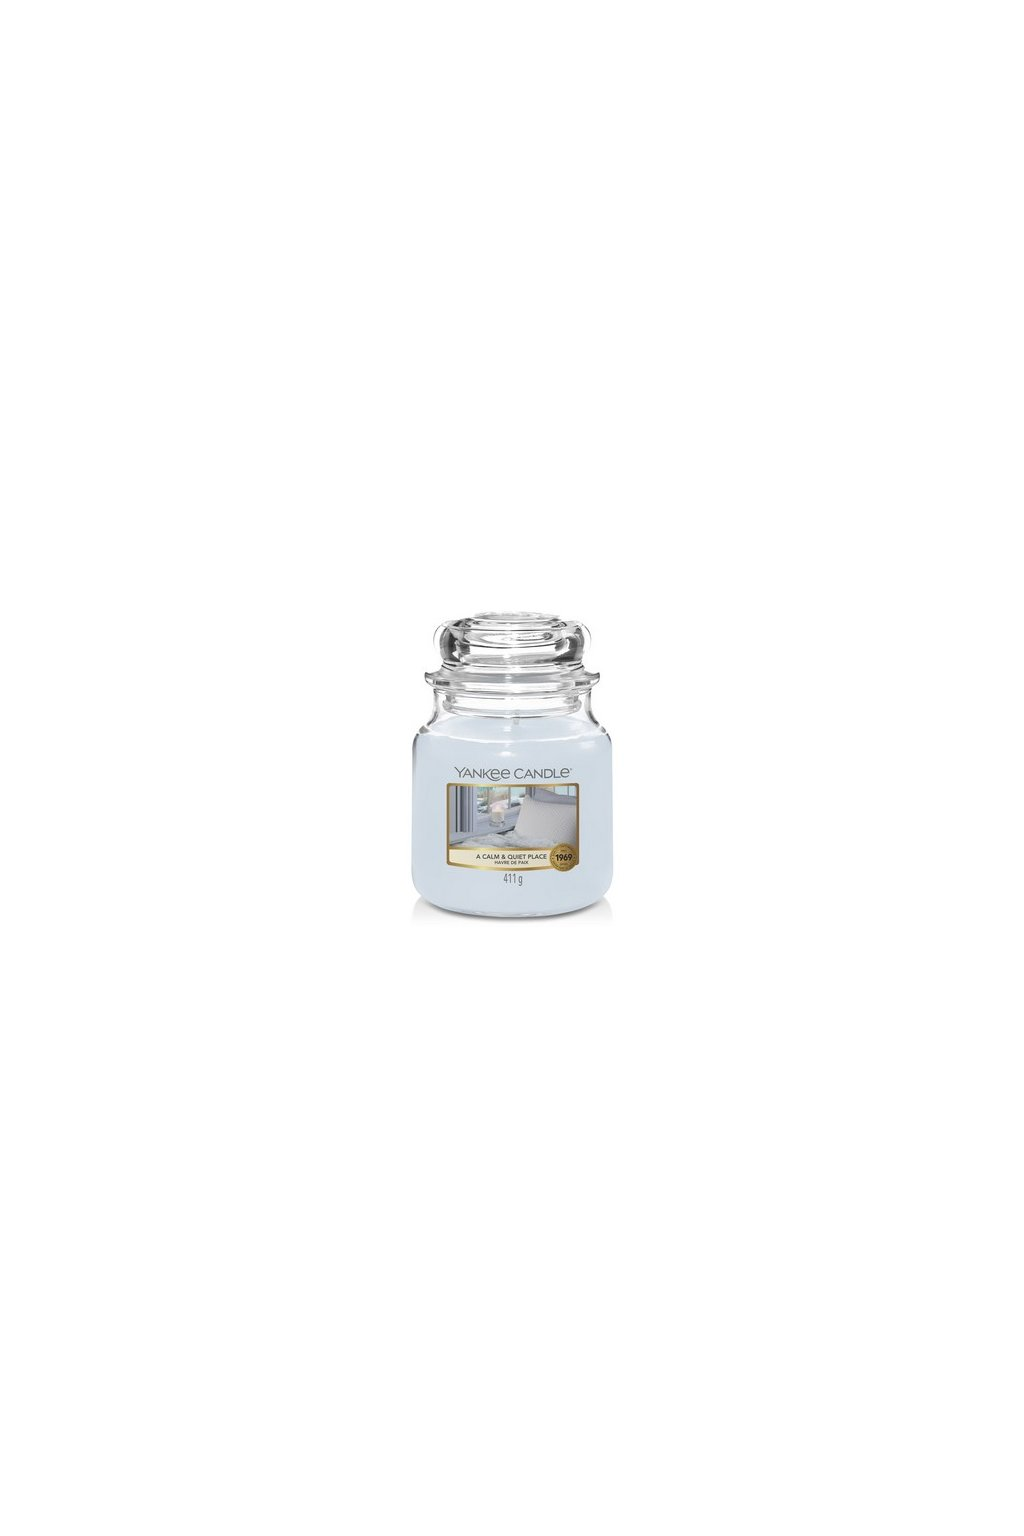 YANKEE CANDLE A CALM & QUIET PLACE 411g